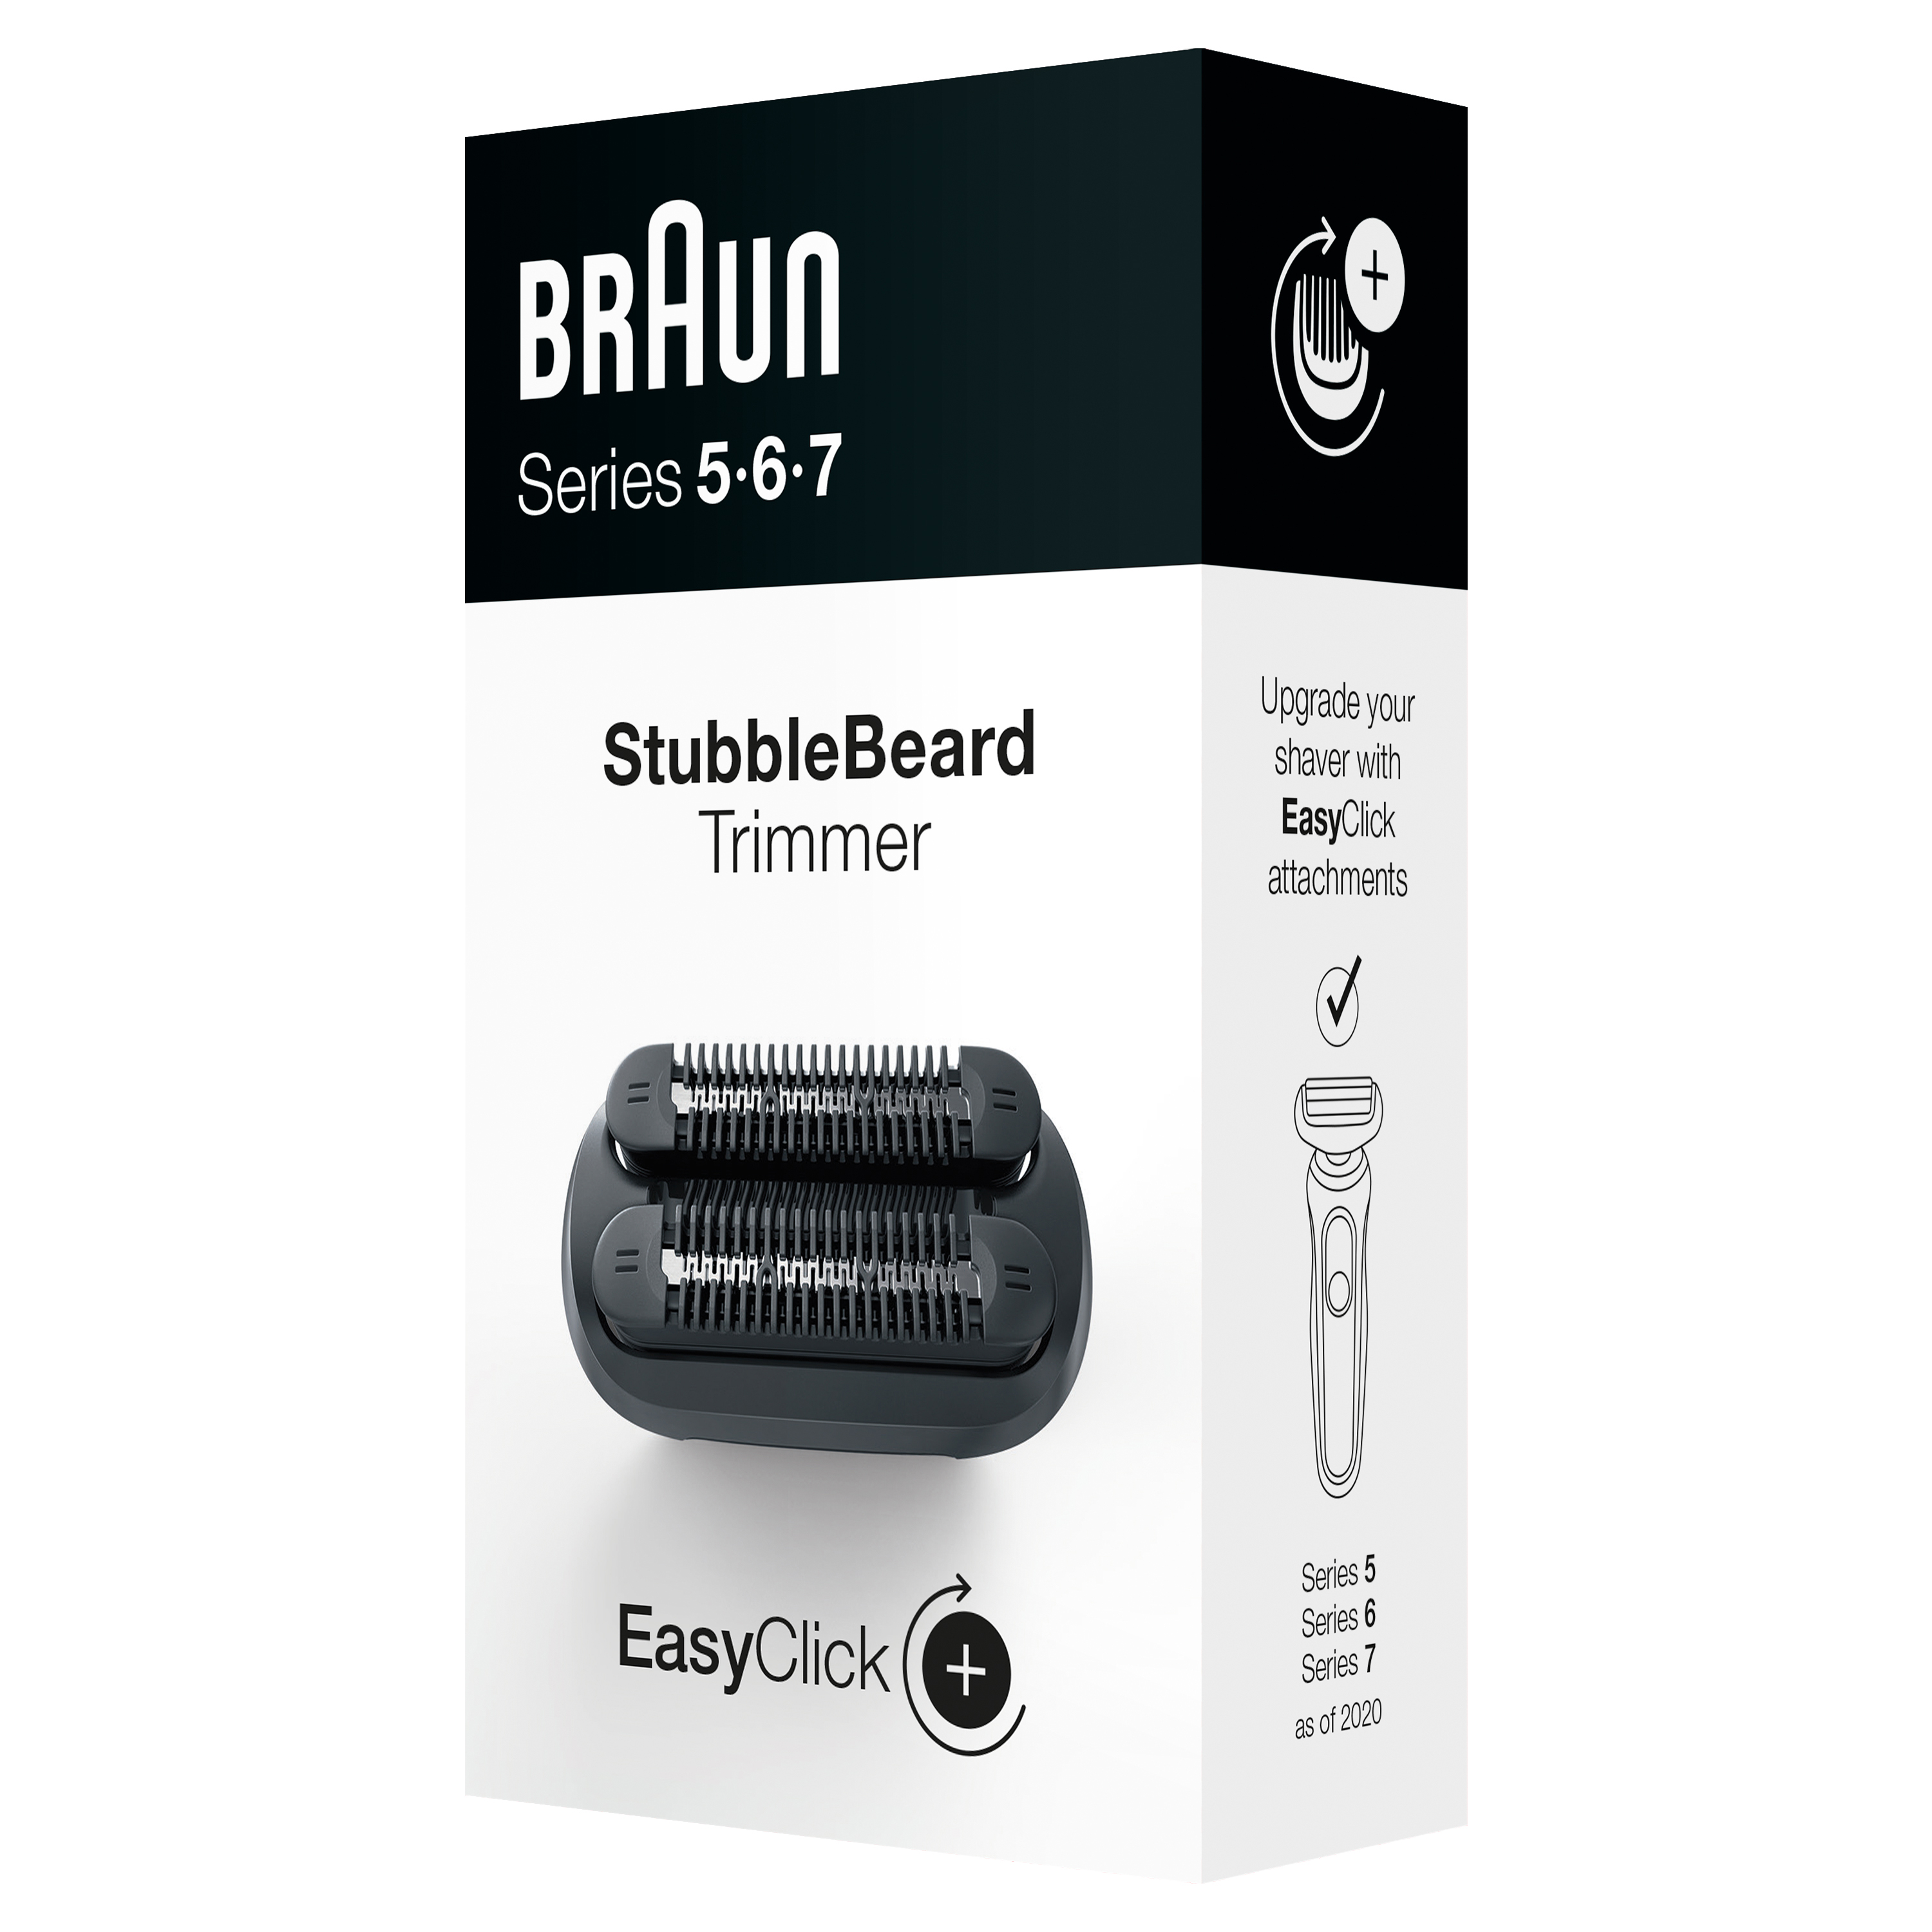 EasyClick Stubble Beard Trimmer attachment for Braun Series 5, 6 and 7 electric shaver